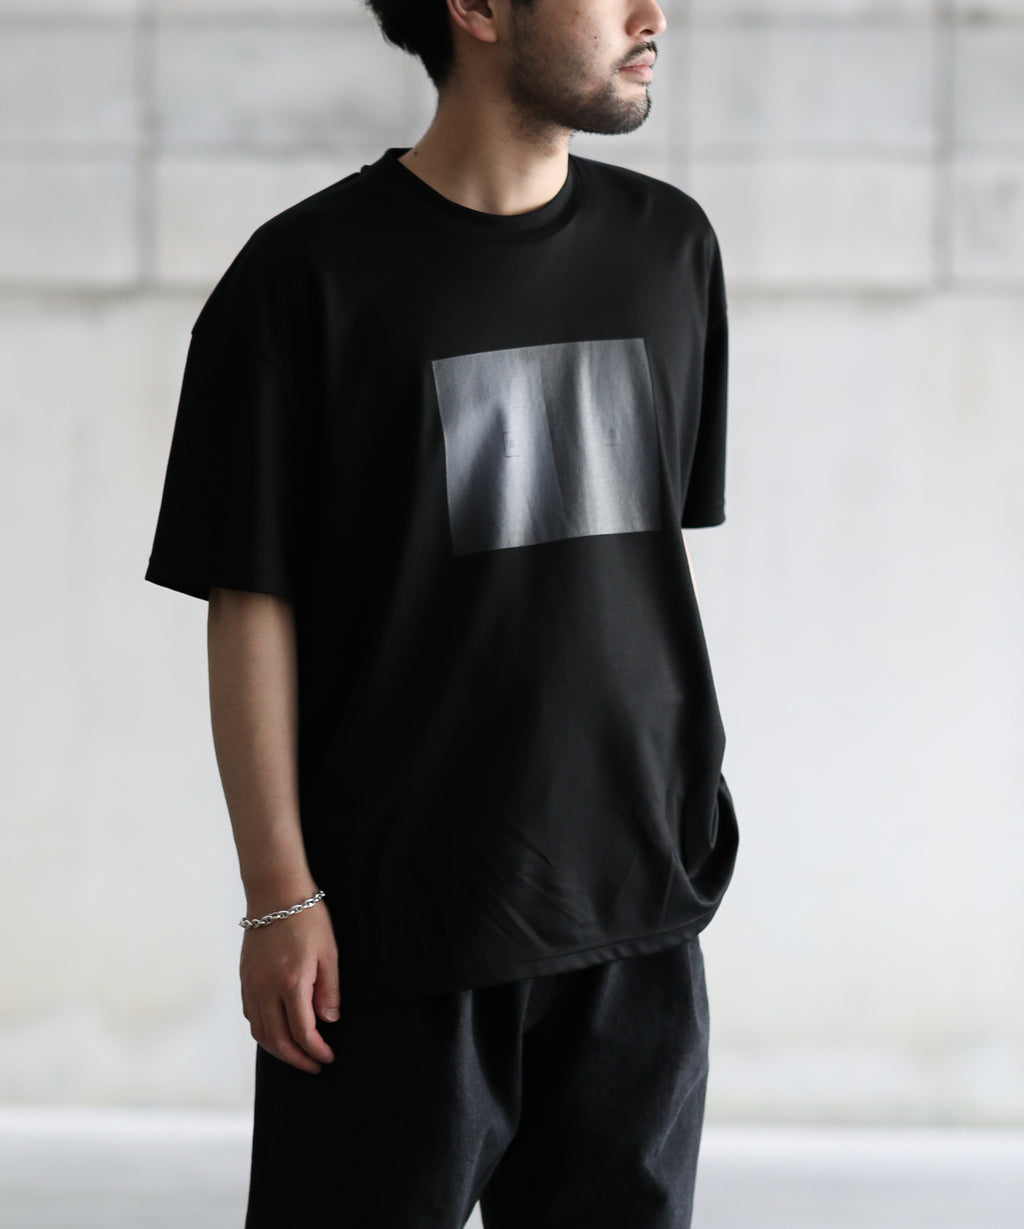 【stein】PRINT TEE - RECONSIDER -stein シュタイン PRINT TEE - RECONSIDER - BLACK ST.259 session